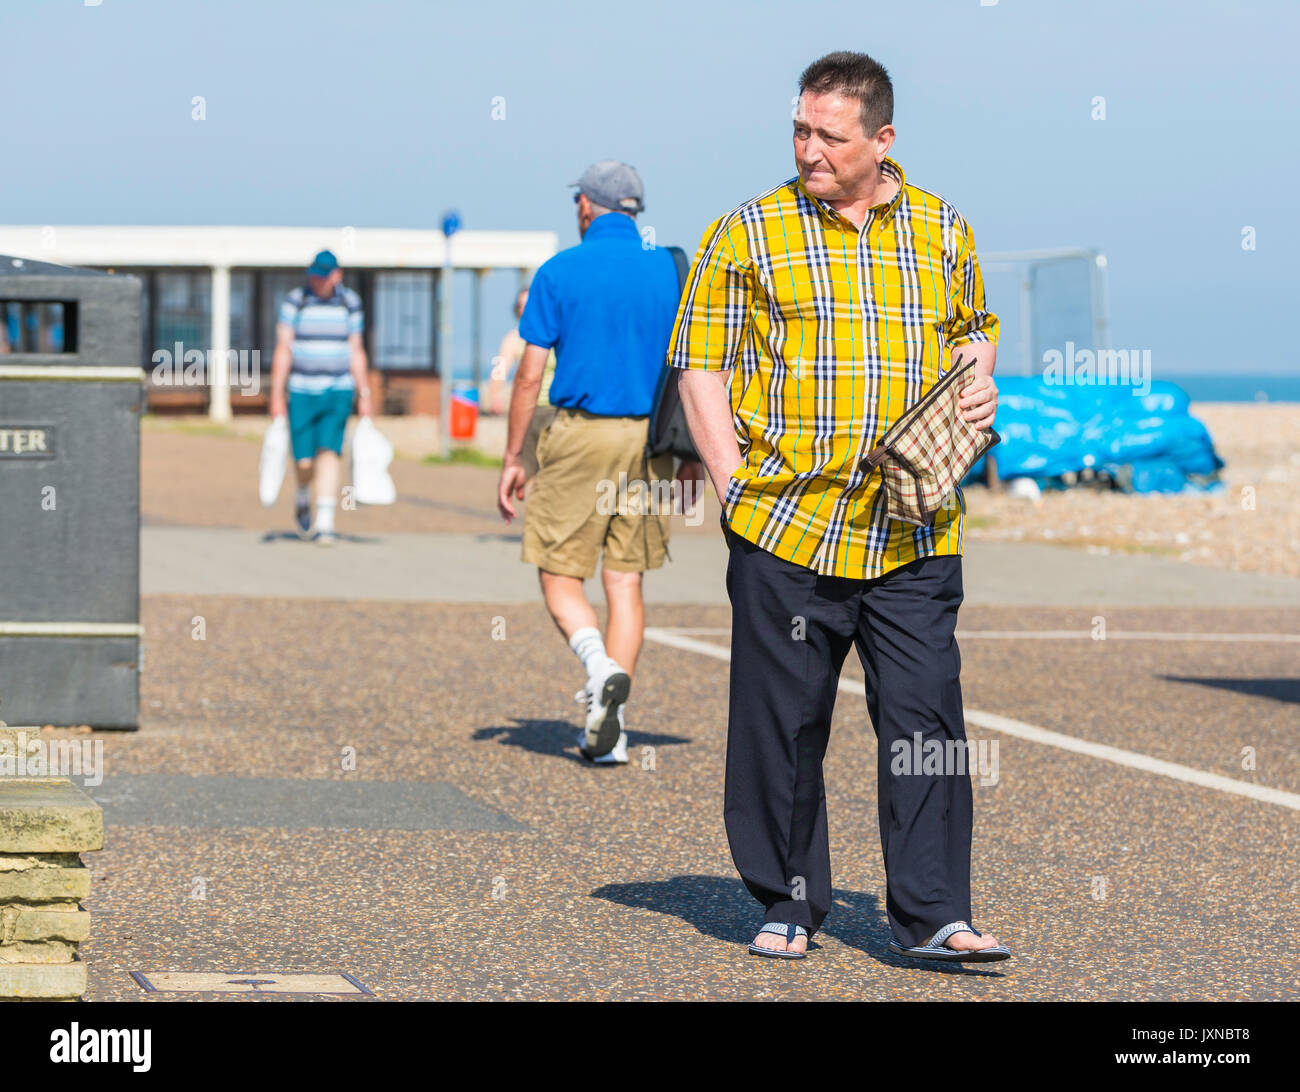 Casually dressed middle aged man walking along a path in Summer wearing sandals. - Stock Image